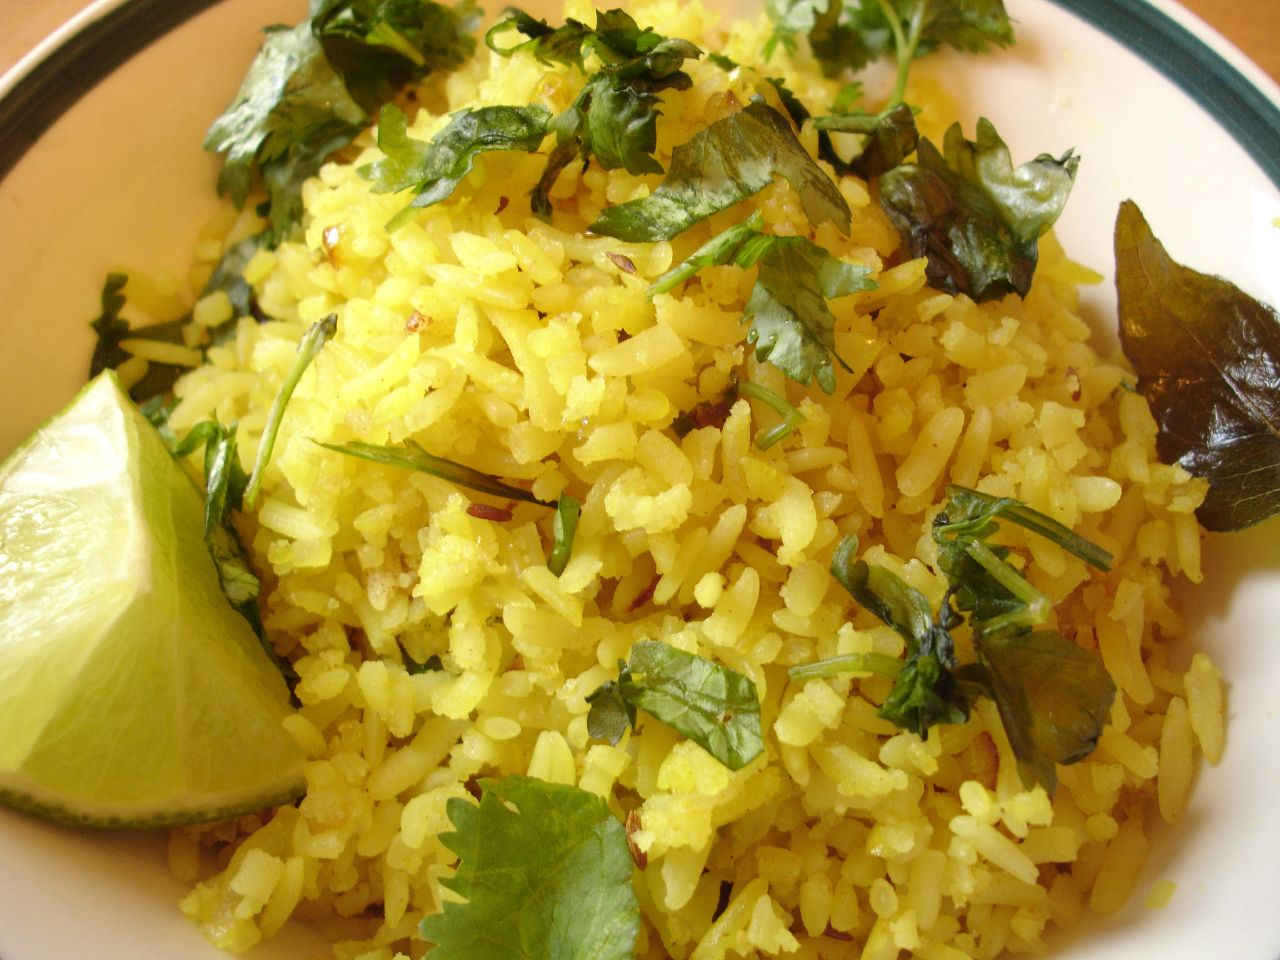 File:Poha, a snack made of flattened rice.jpg